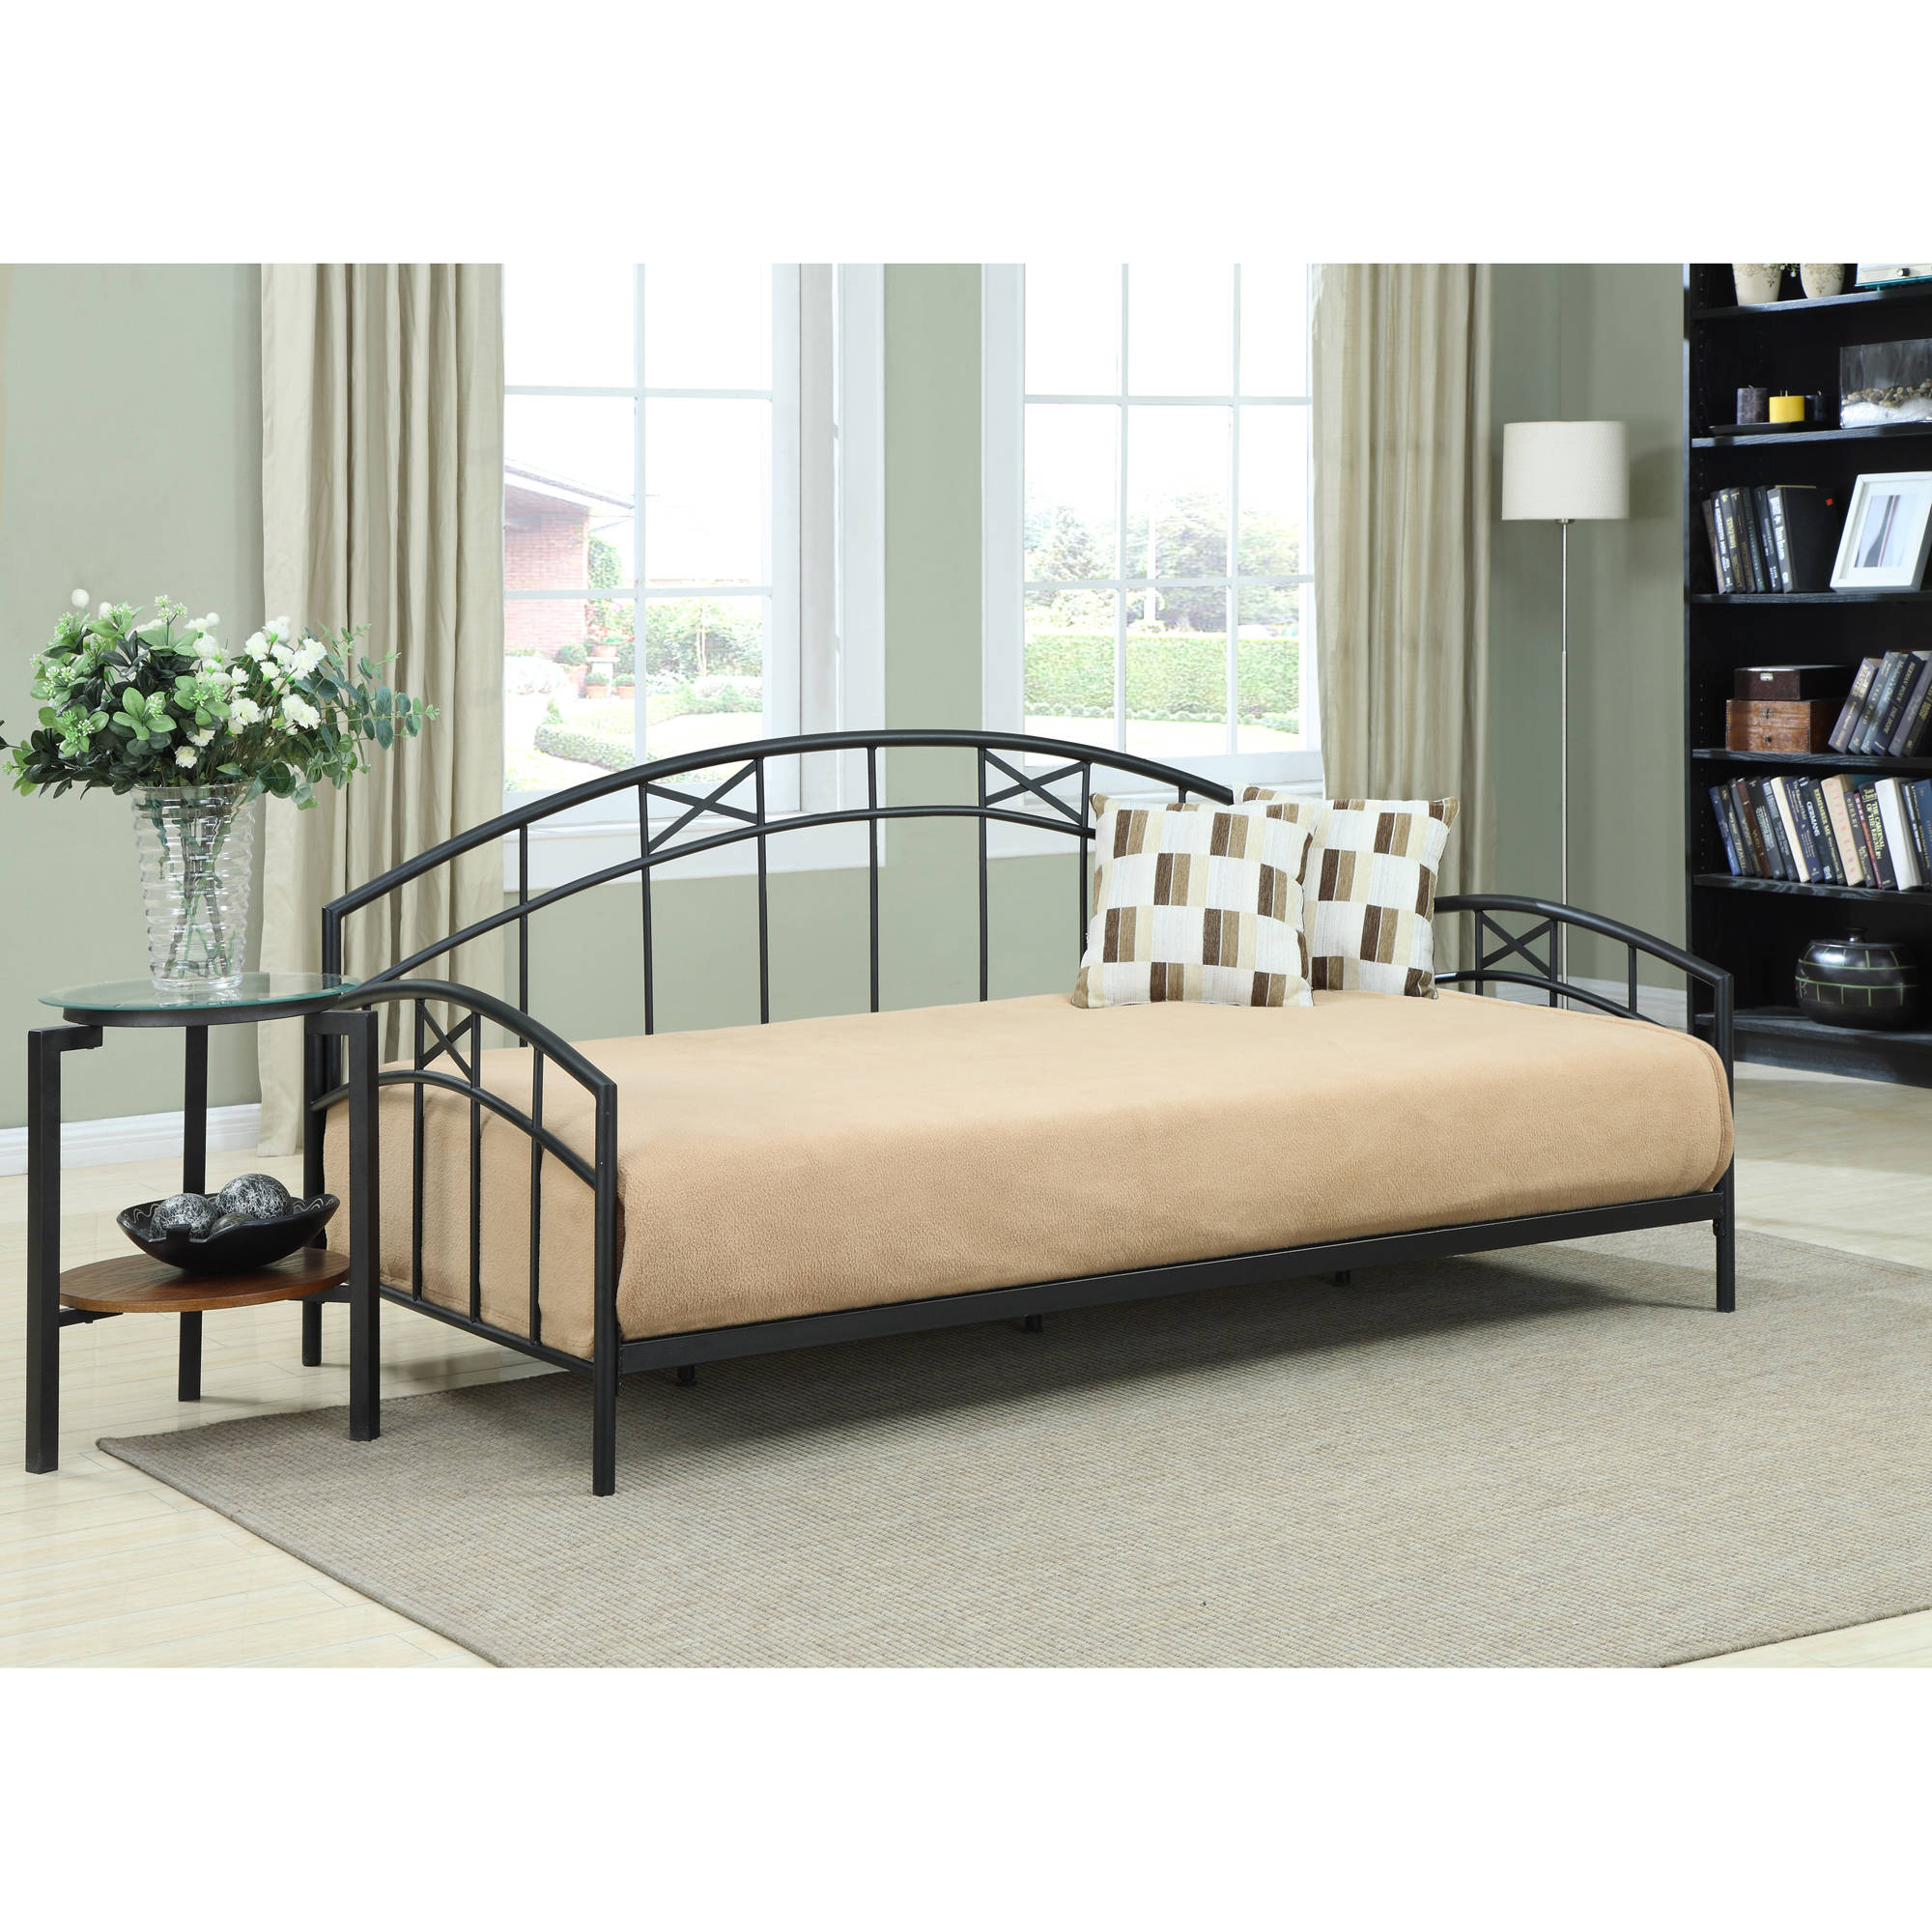 Dorel Living Adult Daybed, Black